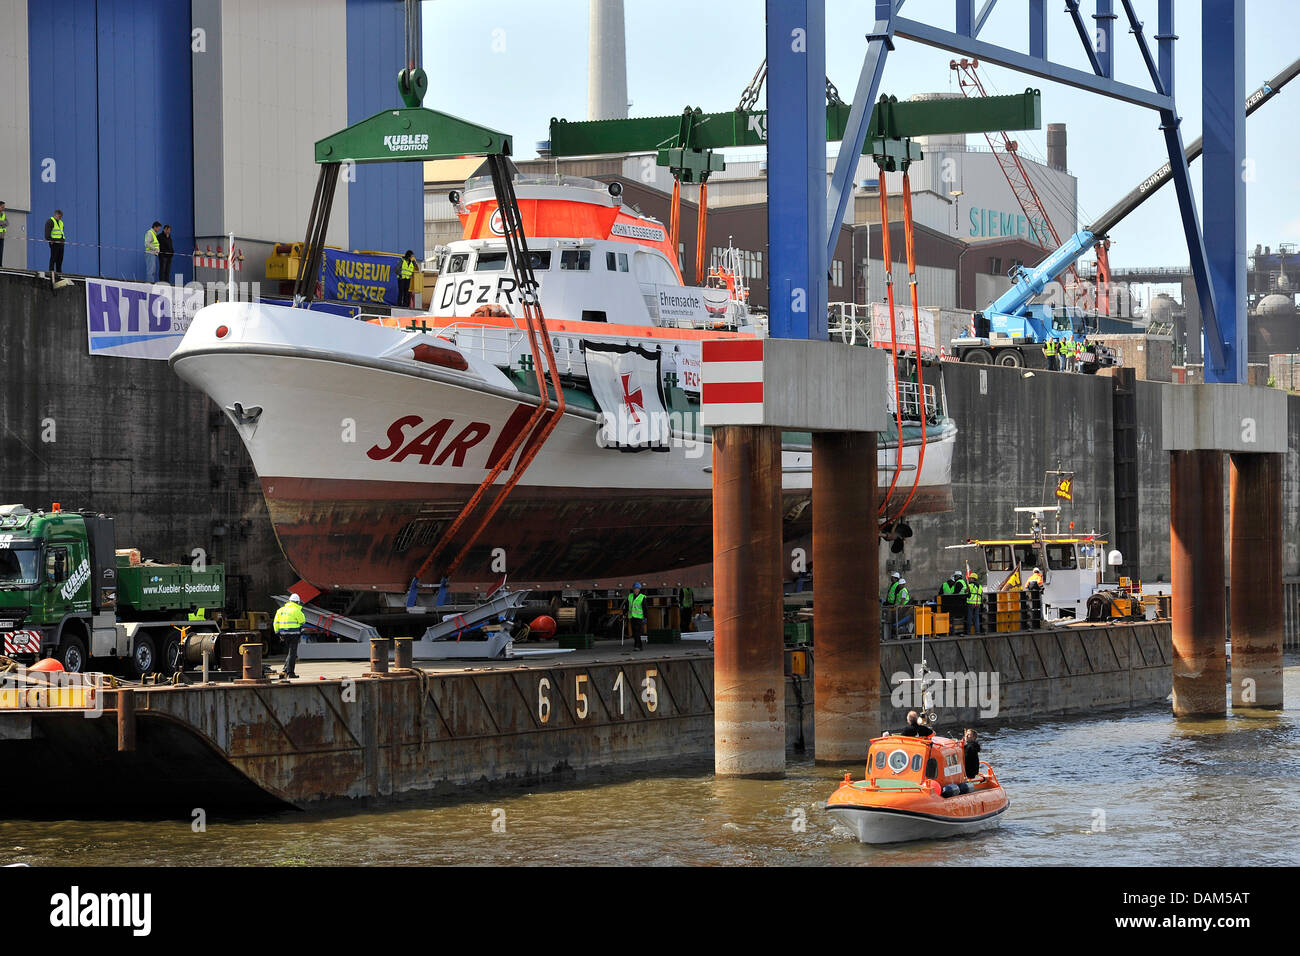 The sea rescue cruiser 'John T. Essberger' is loaded onto a floating pontoon by a special crane at the harbour - Stock Image